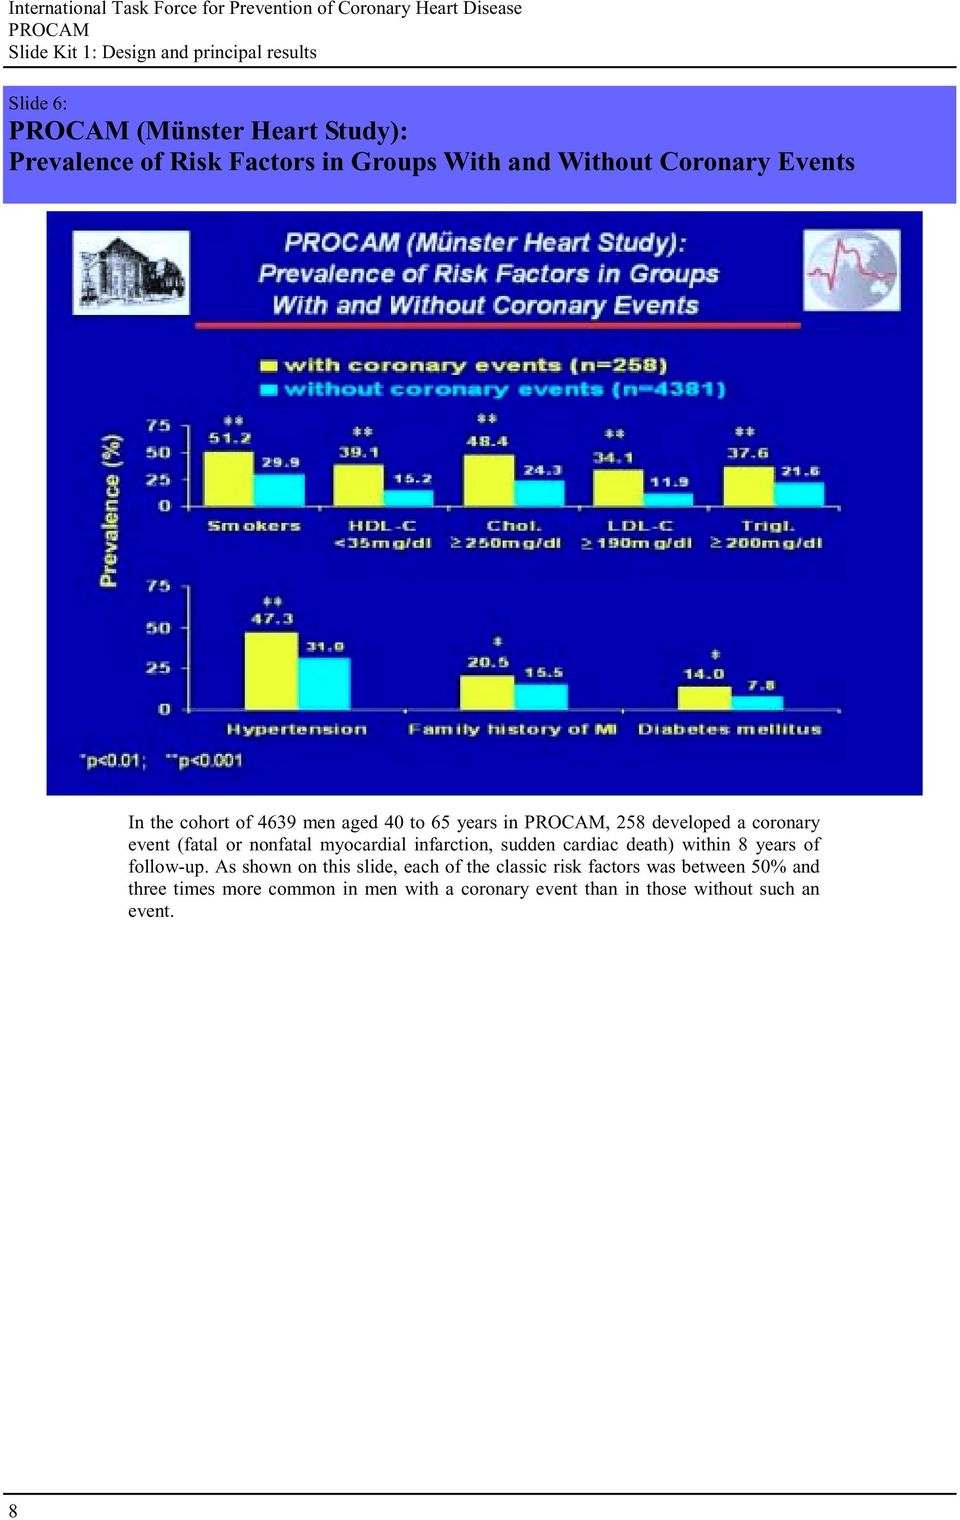 infarction, sudden cardiac death) within 8 years of follow-up.